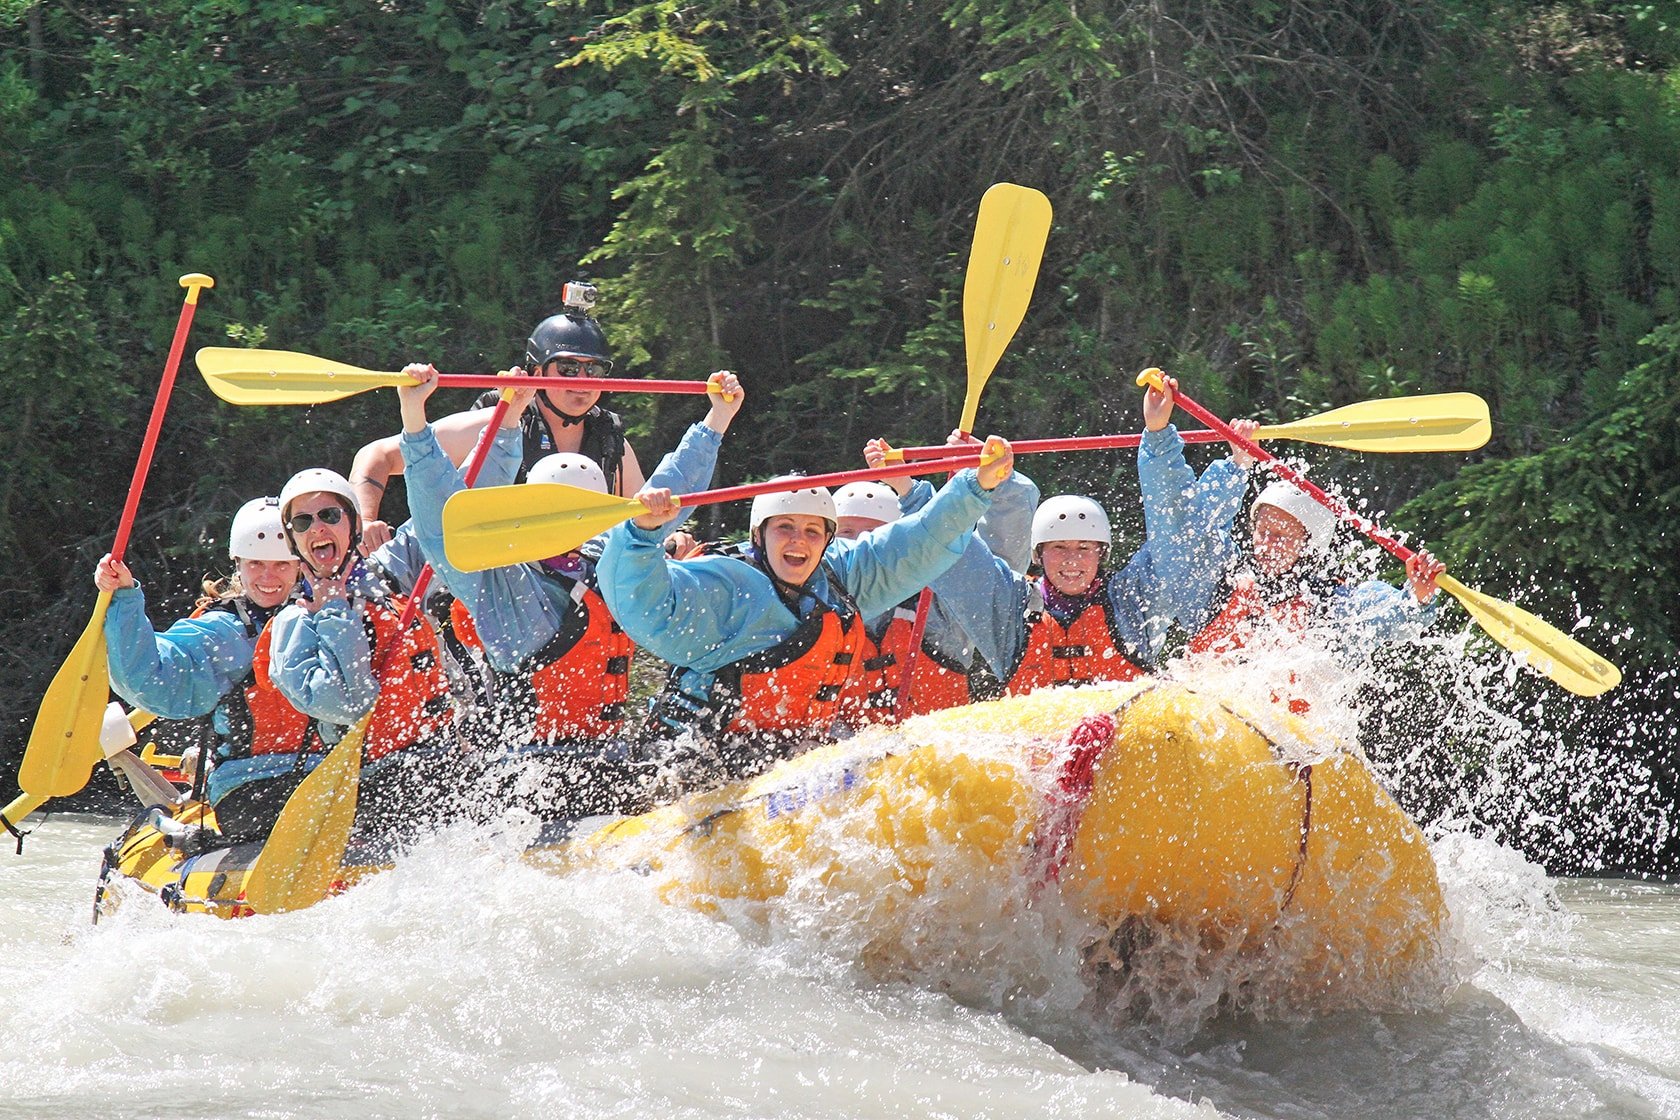 A bachelorette party loving their white water rafting trip